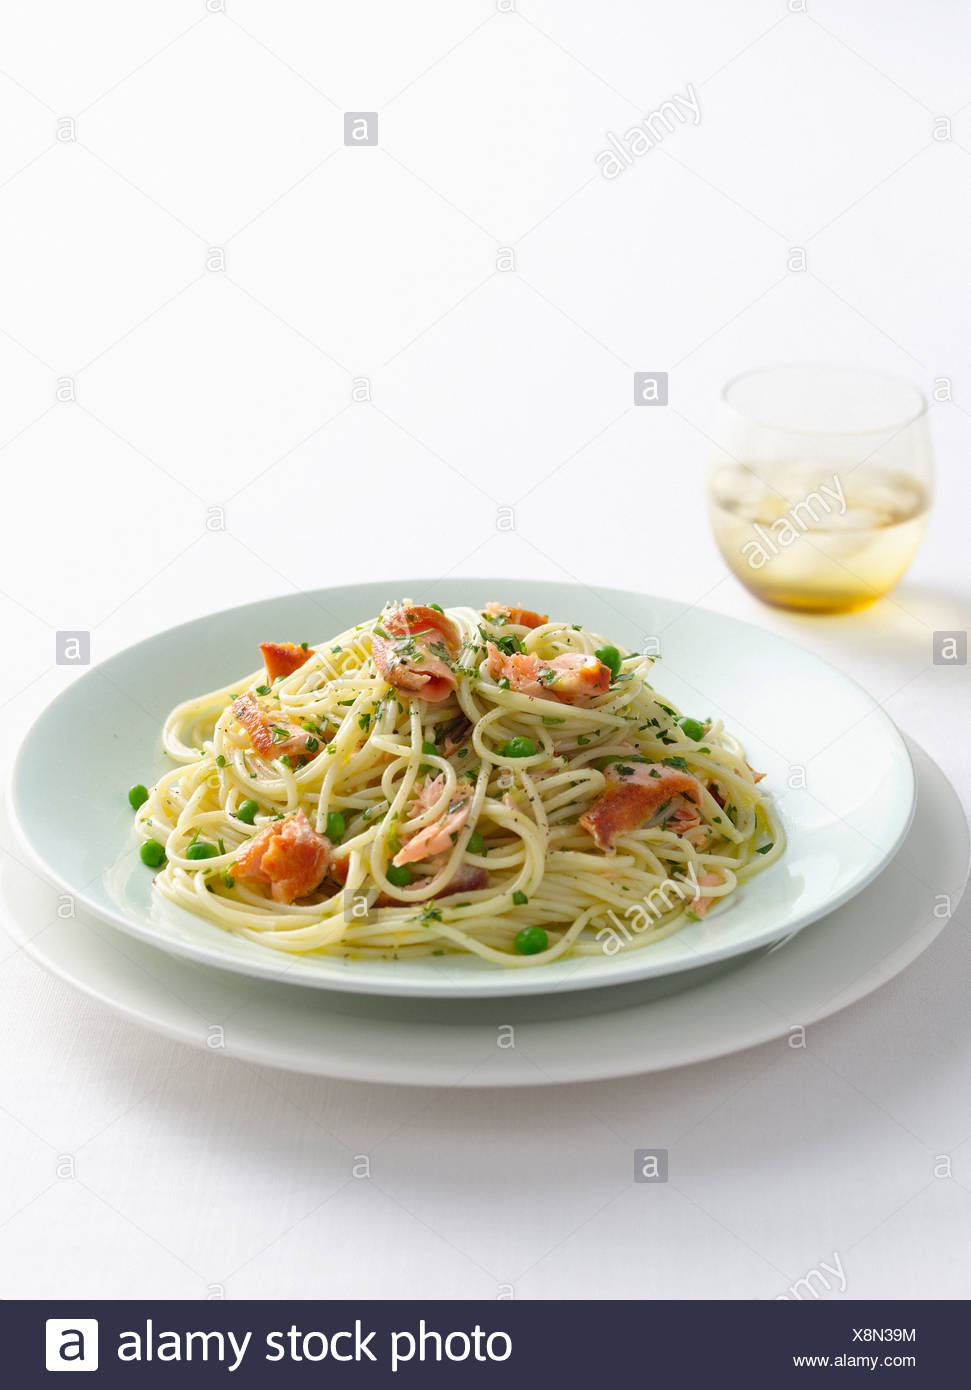 Plate of fish and pea pasta - Stock Image